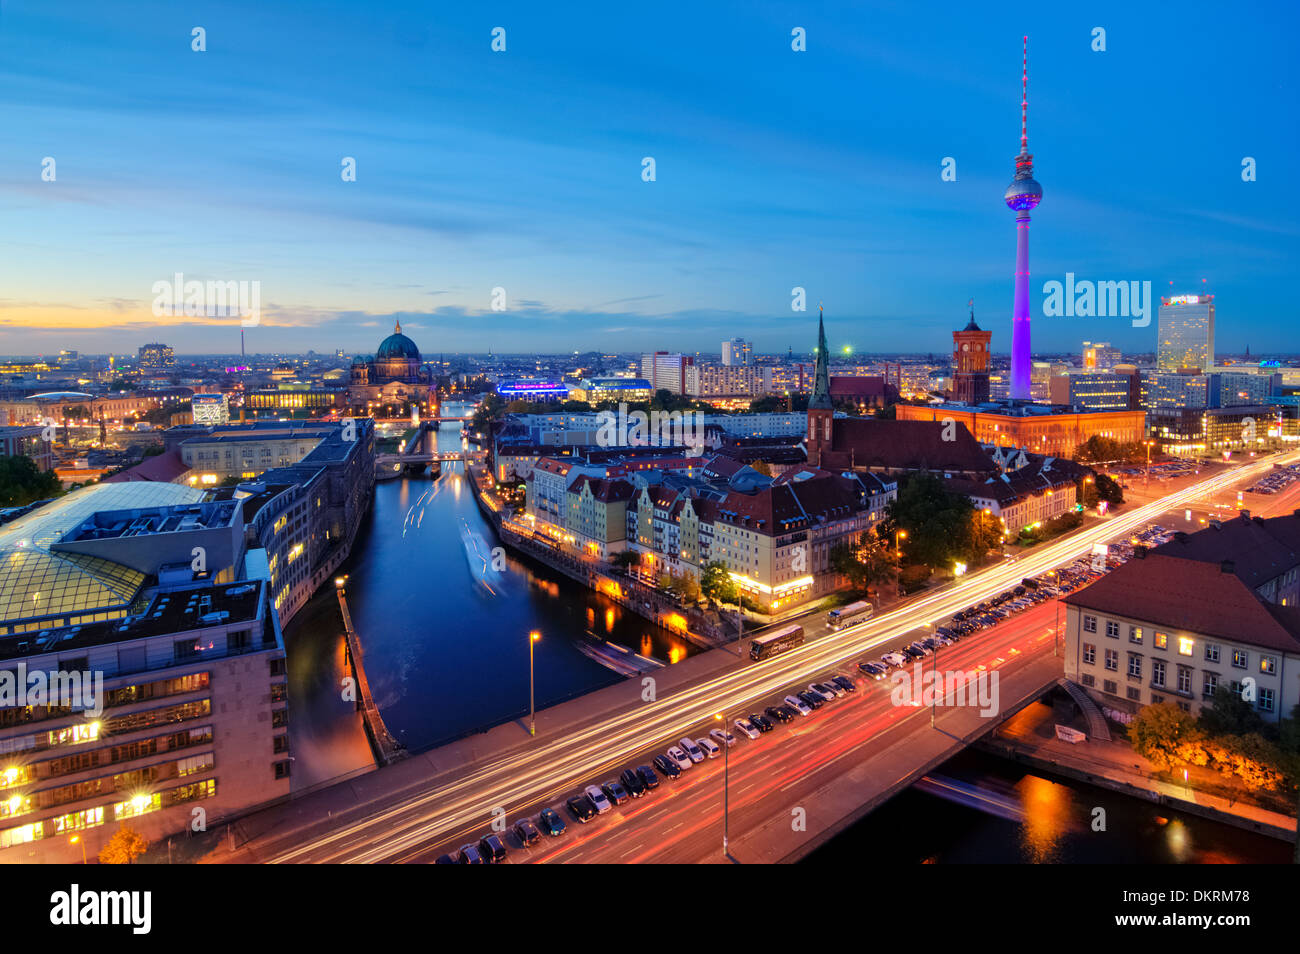 Skyline at Night, Fischerinsel, Berlin-Mitte, Berlin, Allemagne Photo Stock